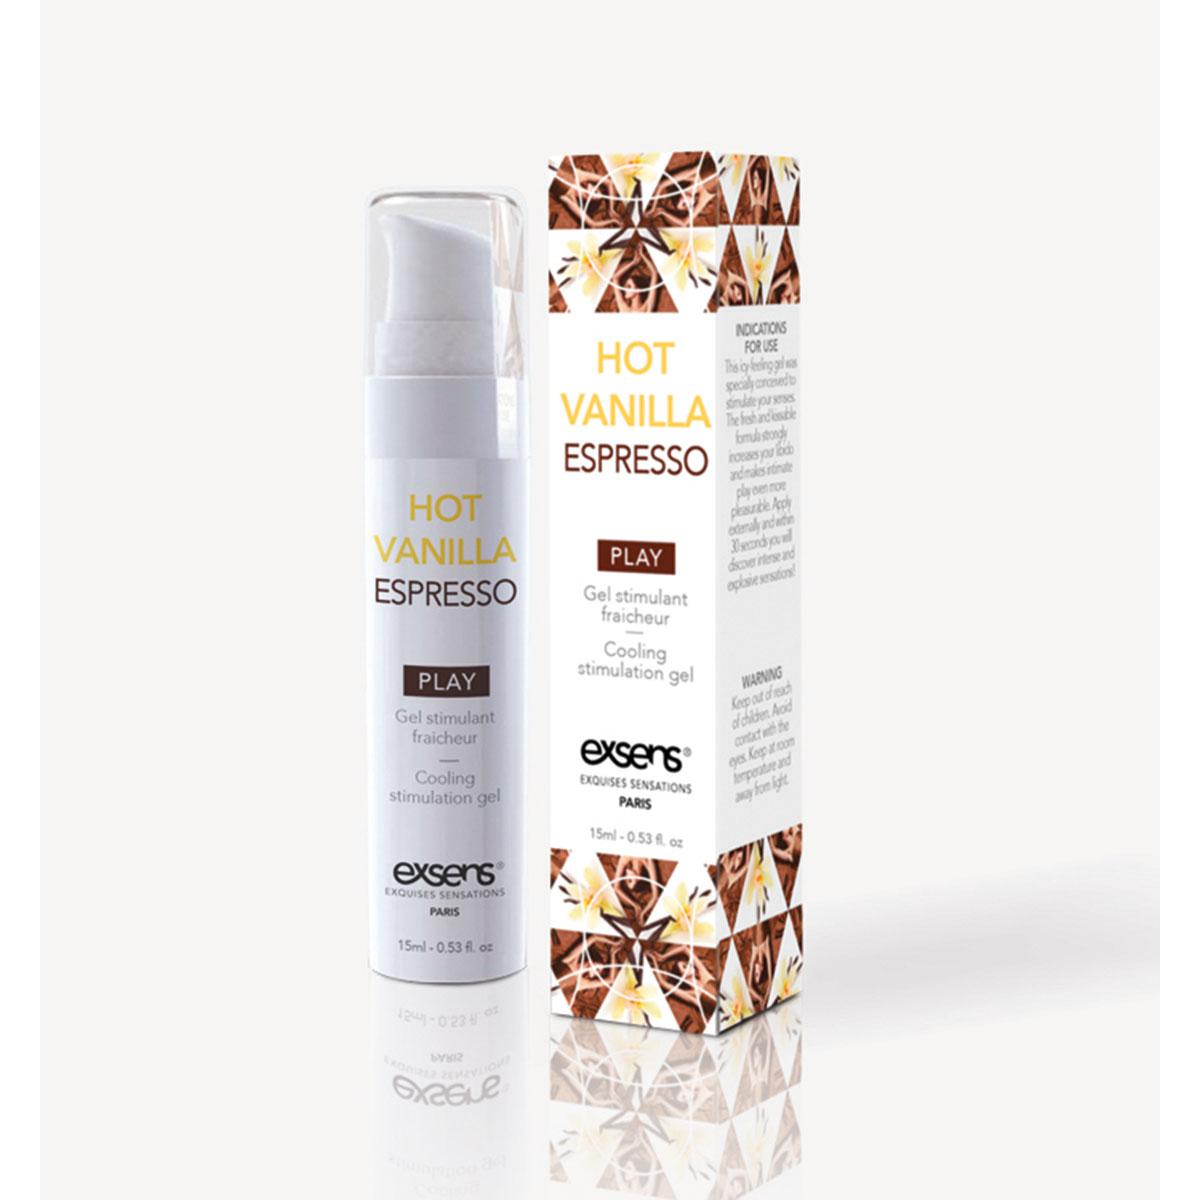 Exsens Arousal Gel 15ml - Vanilla Espresso